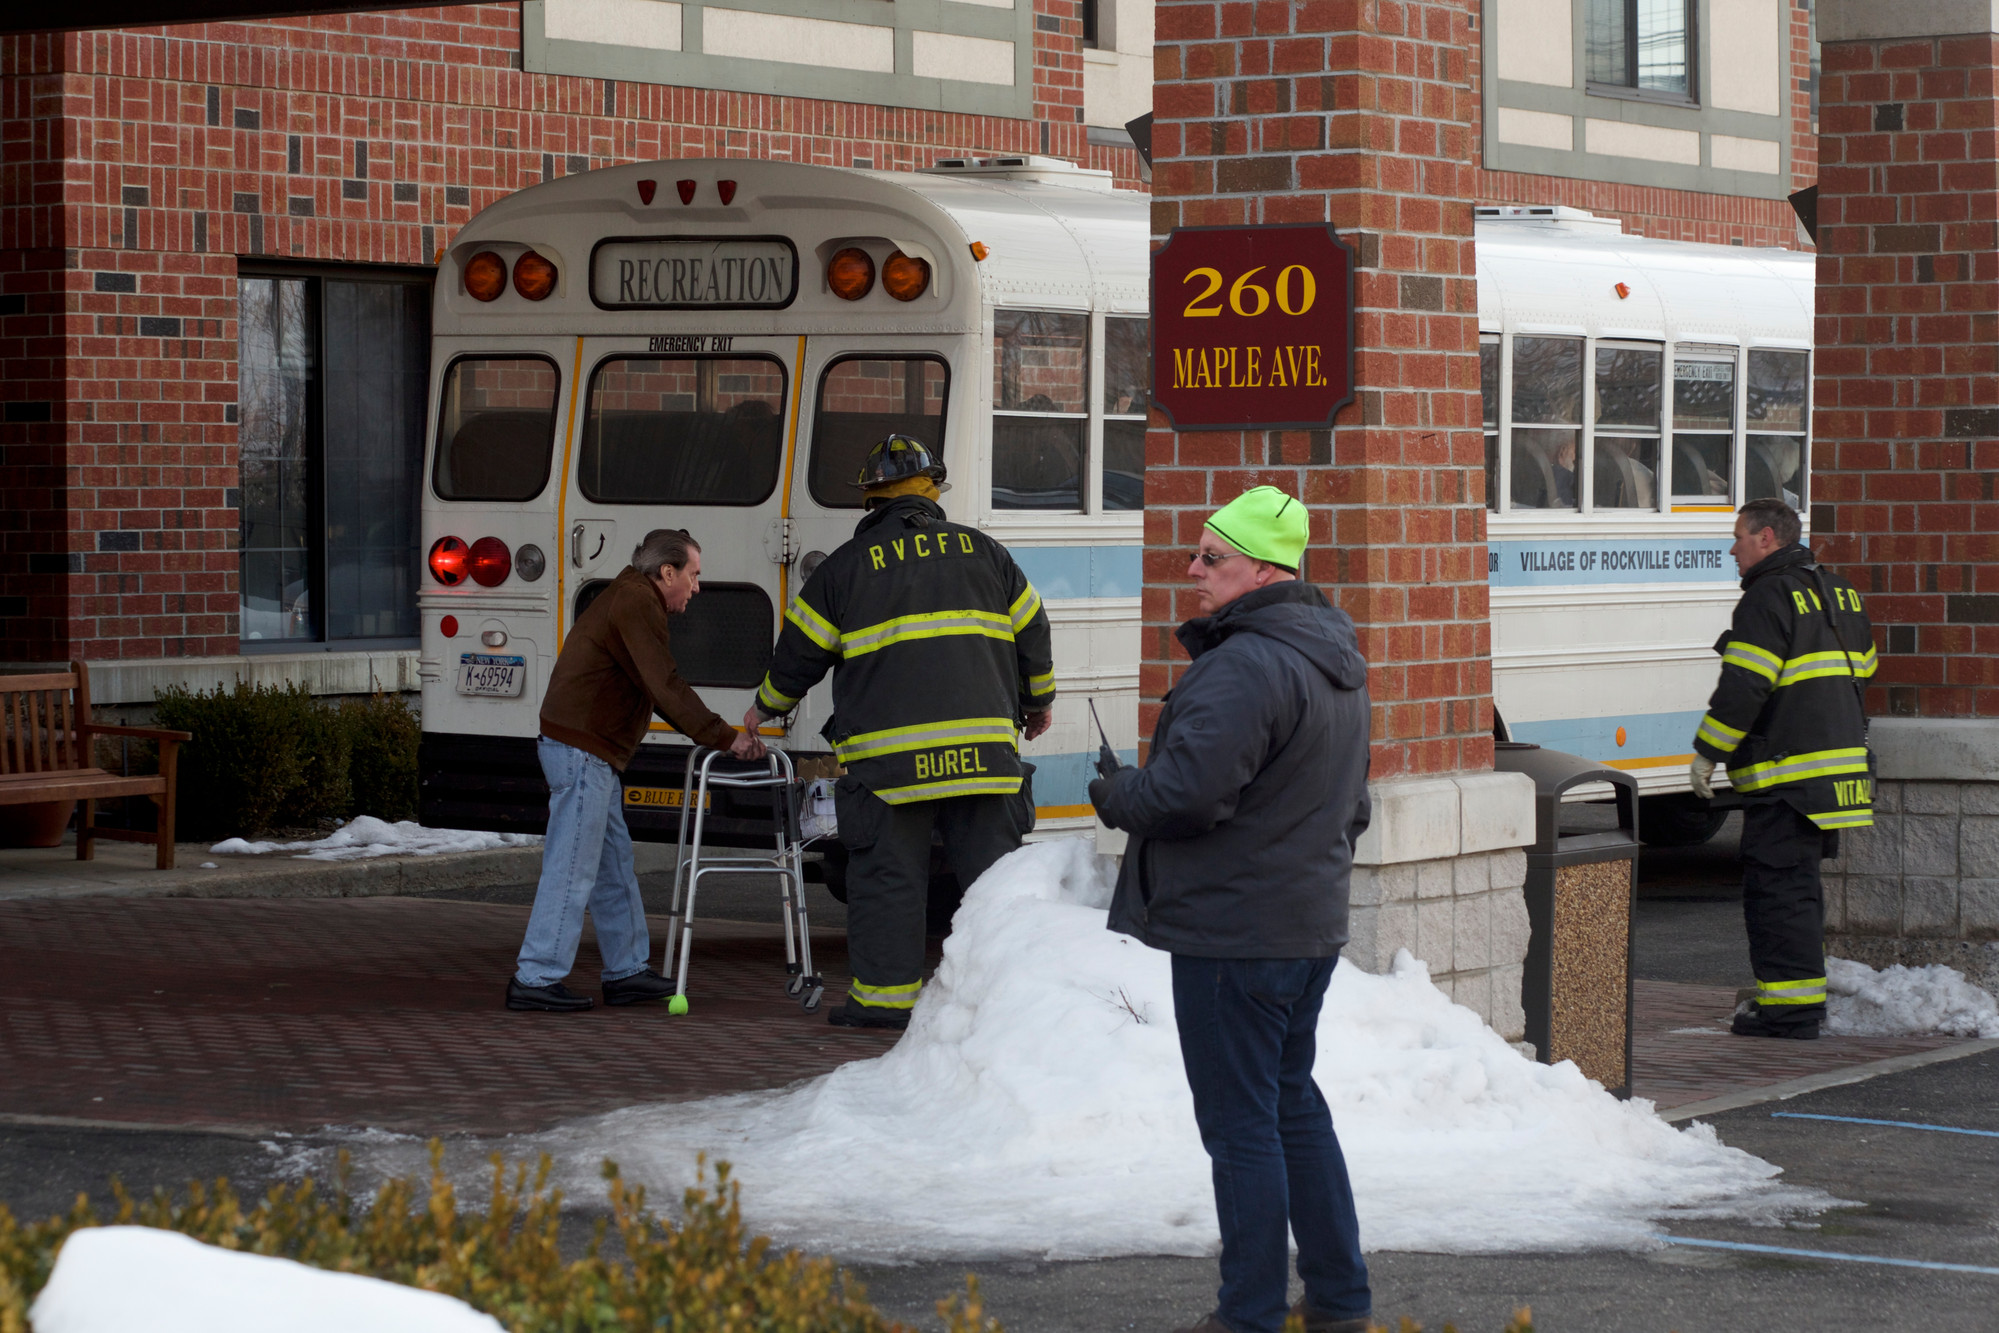 Residents of Maple Point Assisted Living were evacuated from their homes early Wednesday morning. Chelsea Senior Living, the company that runs Maple Pointe, hopes to have residents back in on Thursday.